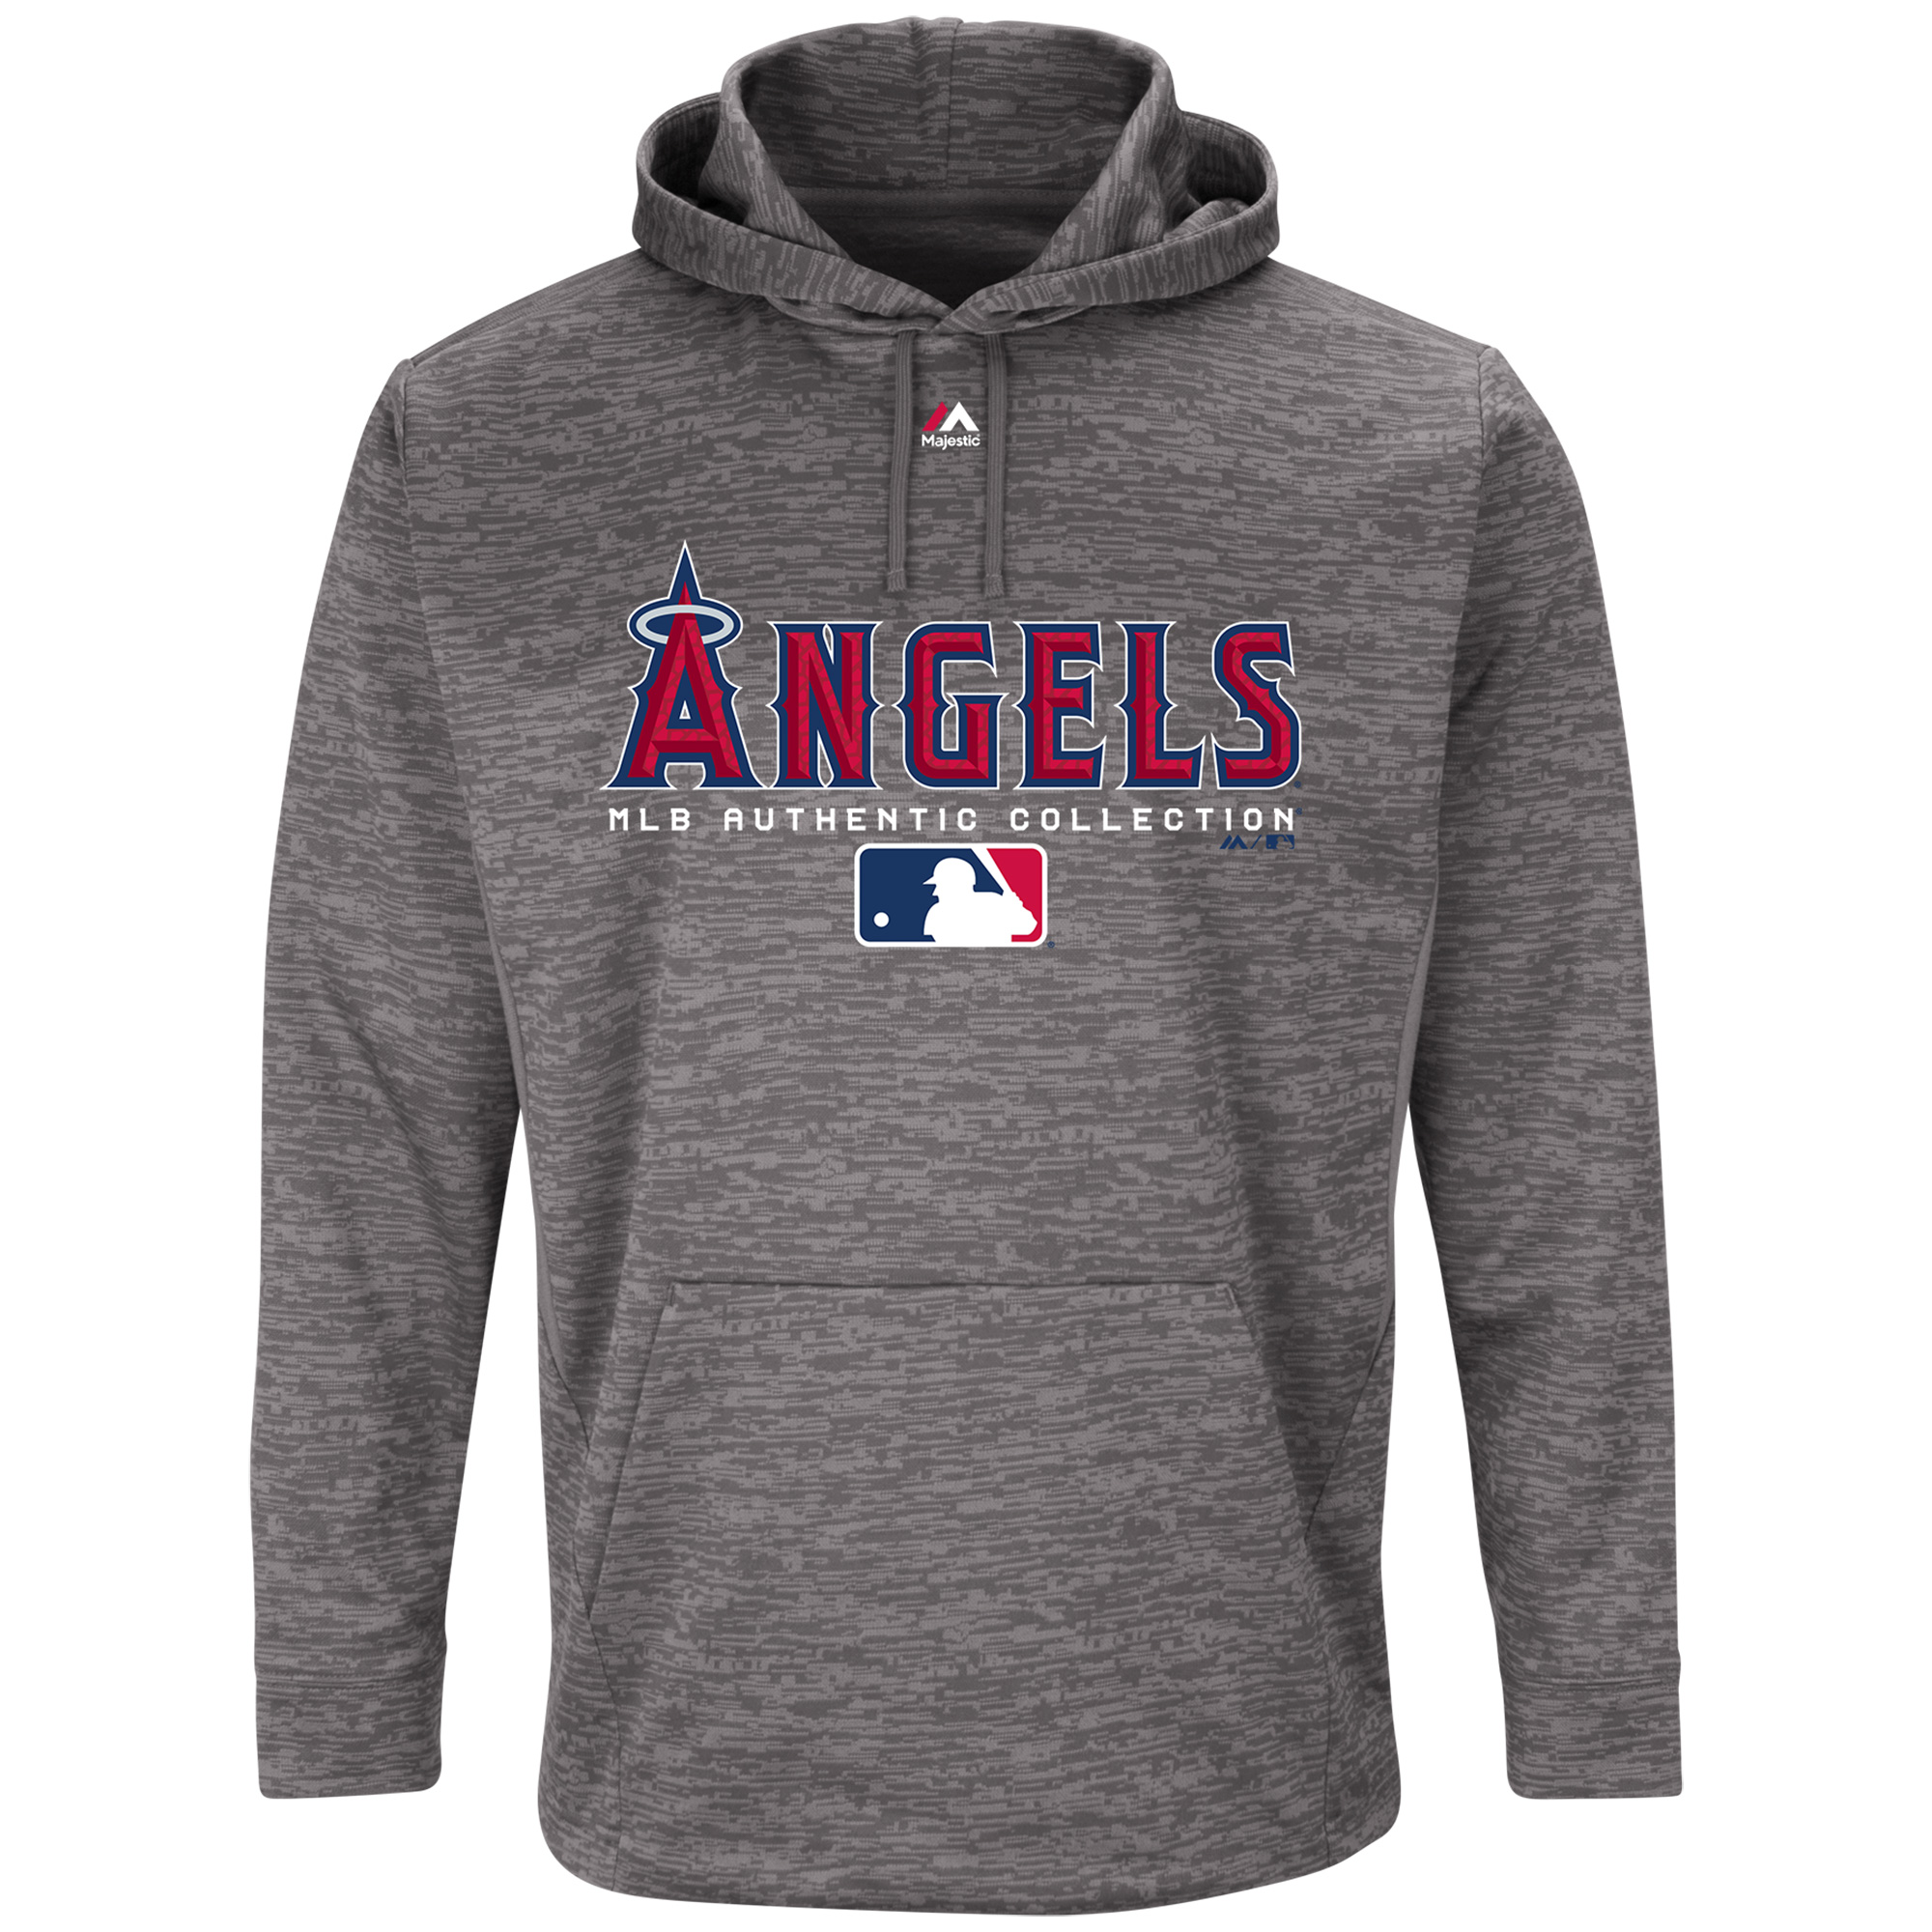 Los Angeles Angels Majestic Authentic Collection Team Drive Ultra-Streak Fleece Therma Base Pullover Hoodie - Graphite